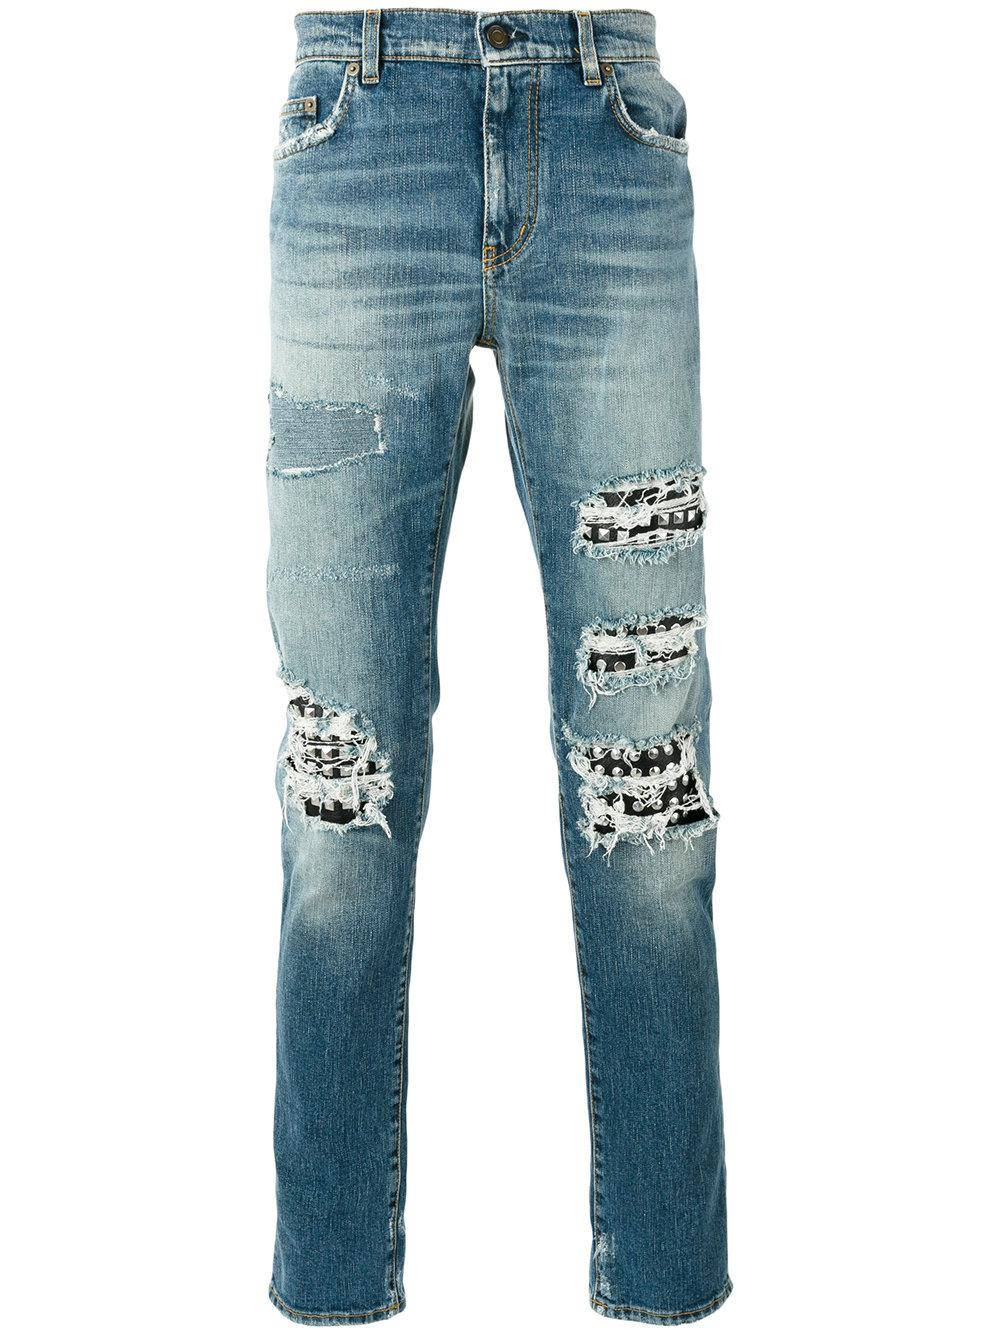 Find studded jeans at ShopStyle. Shop the latest collection of studded jeans from the most popular stores - all in one place.